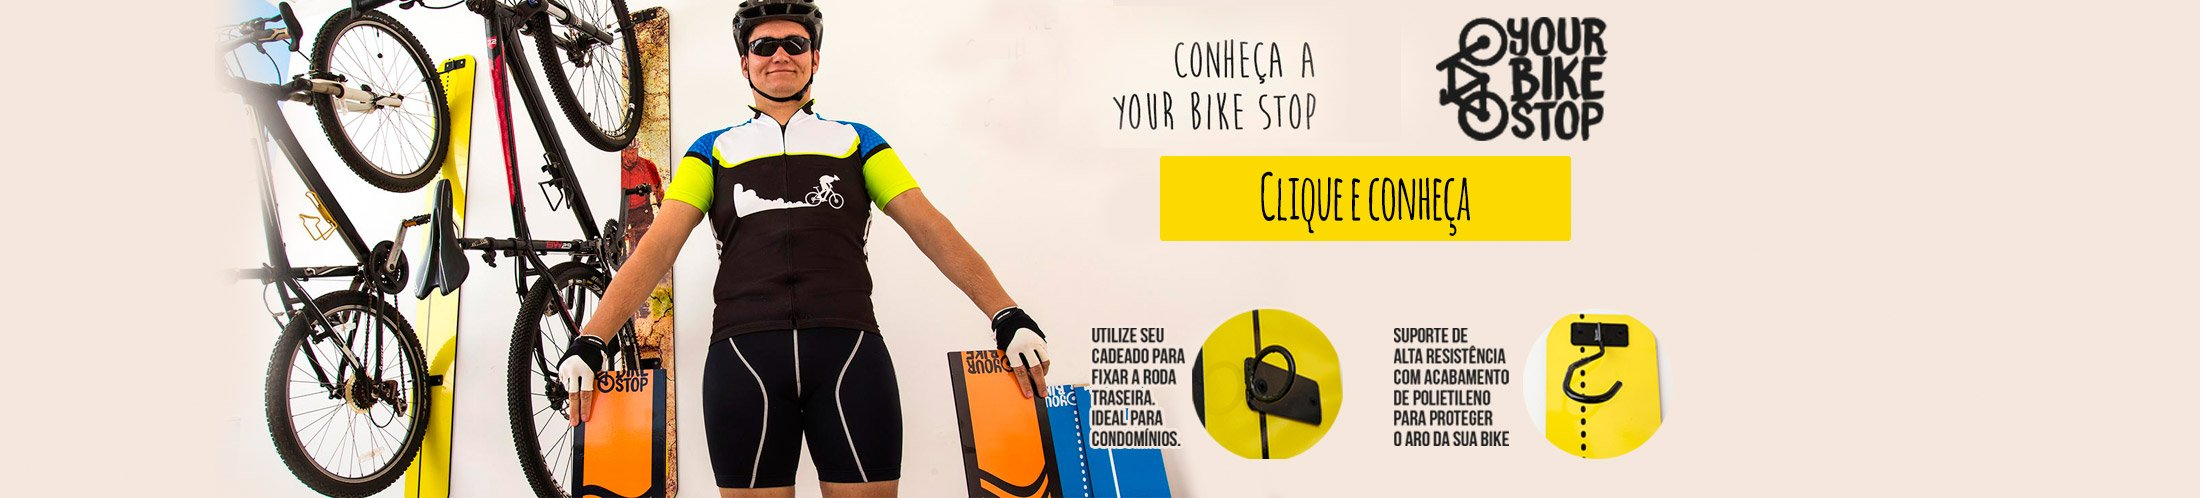 your bike stop